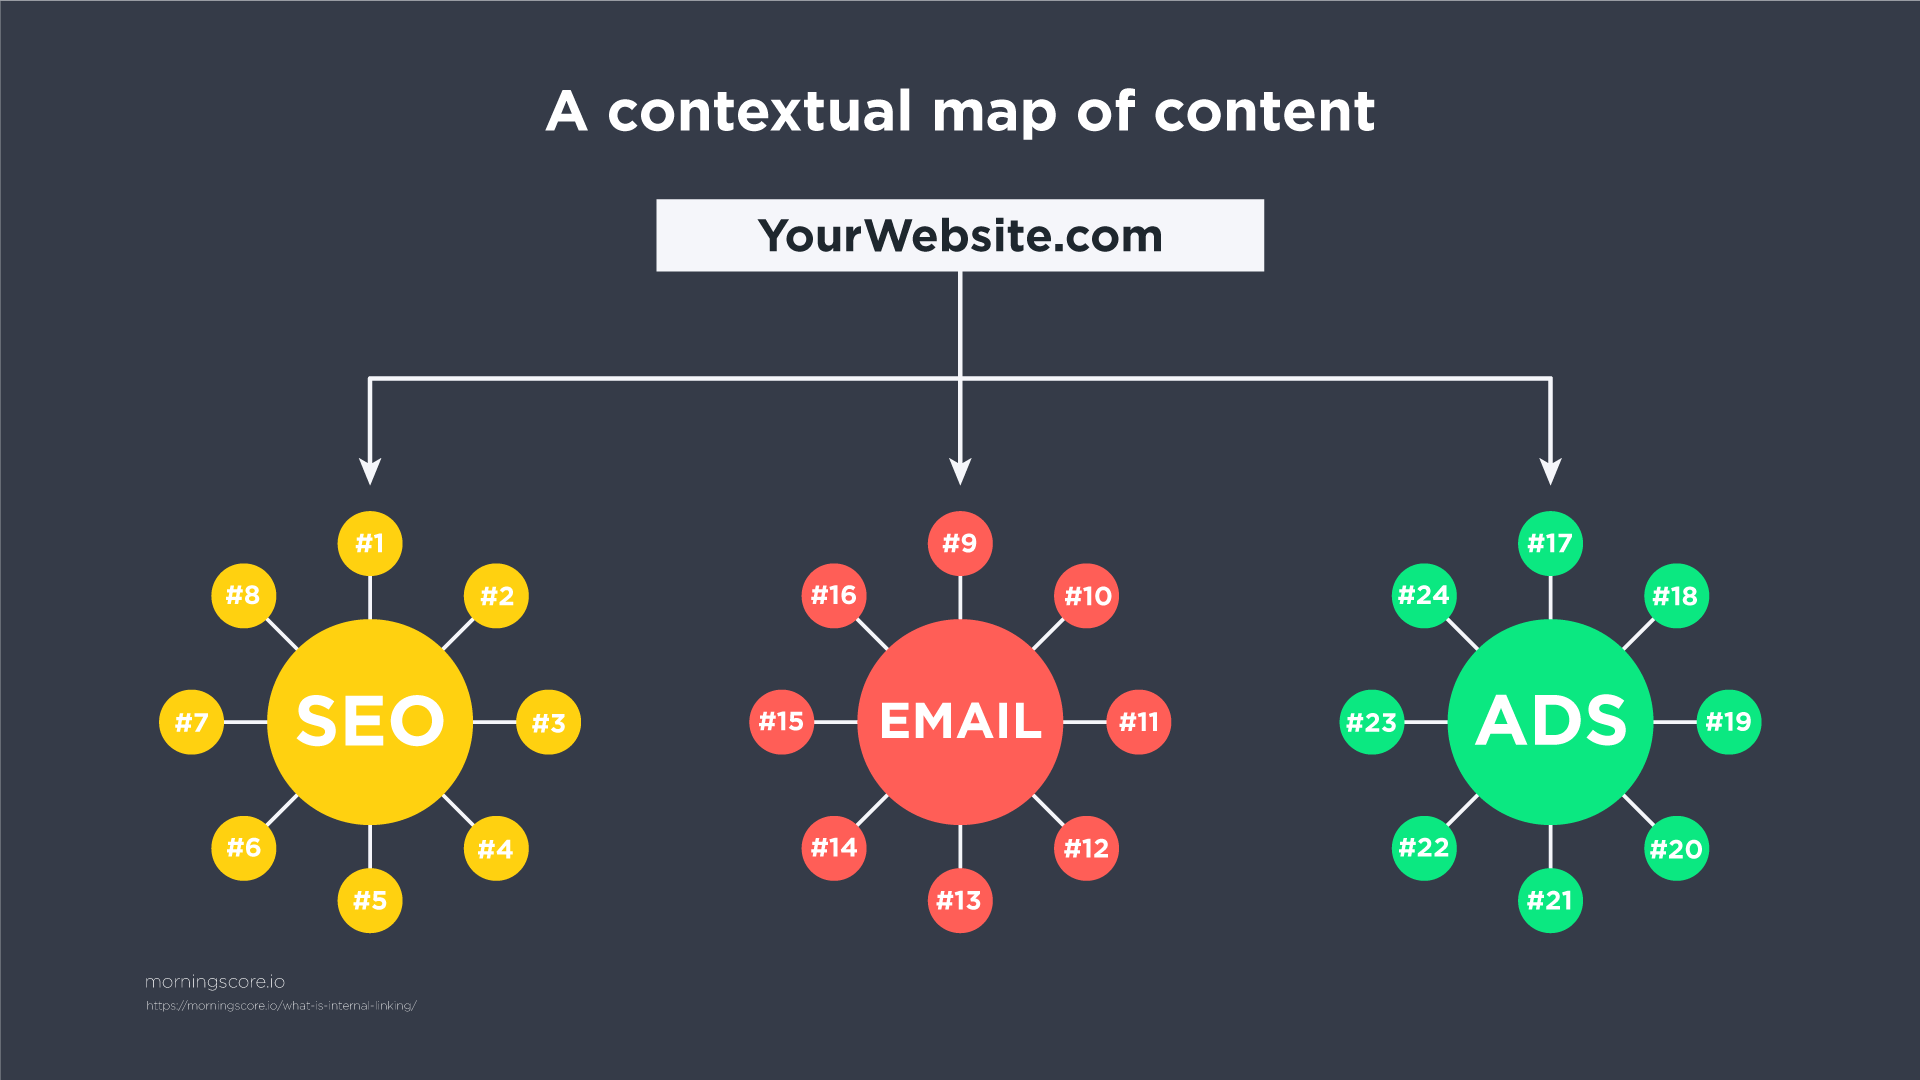 internal linking helps google build a contextual map of your website content